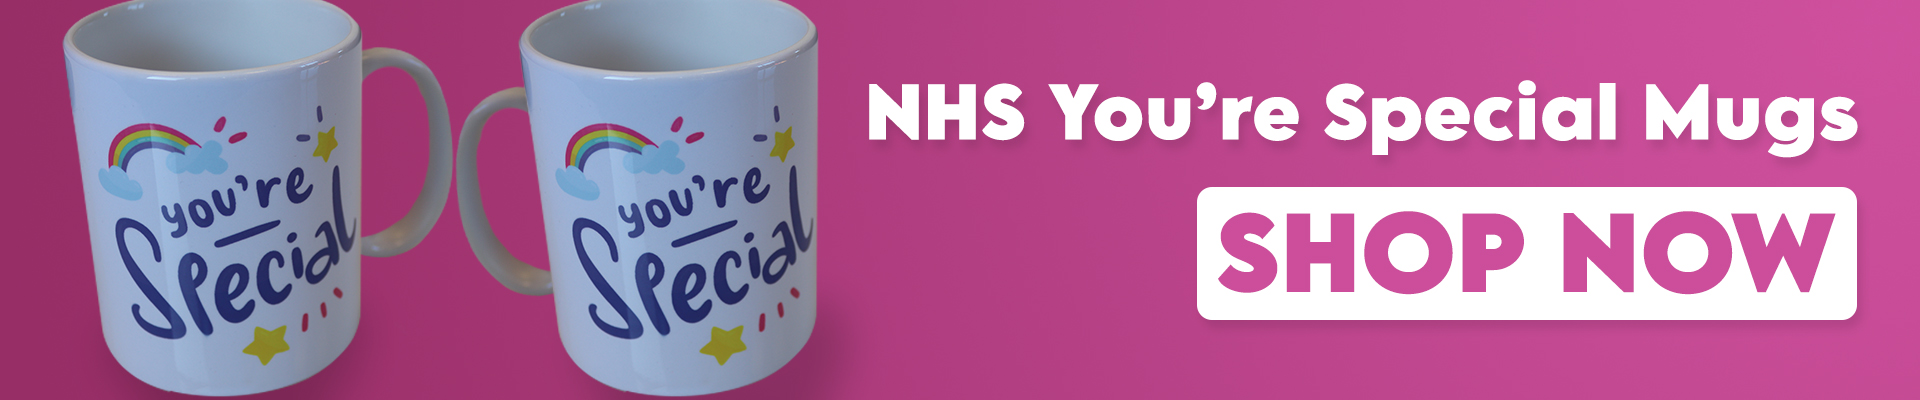 NHS_Rainbow_SiteHeaders_MUGS